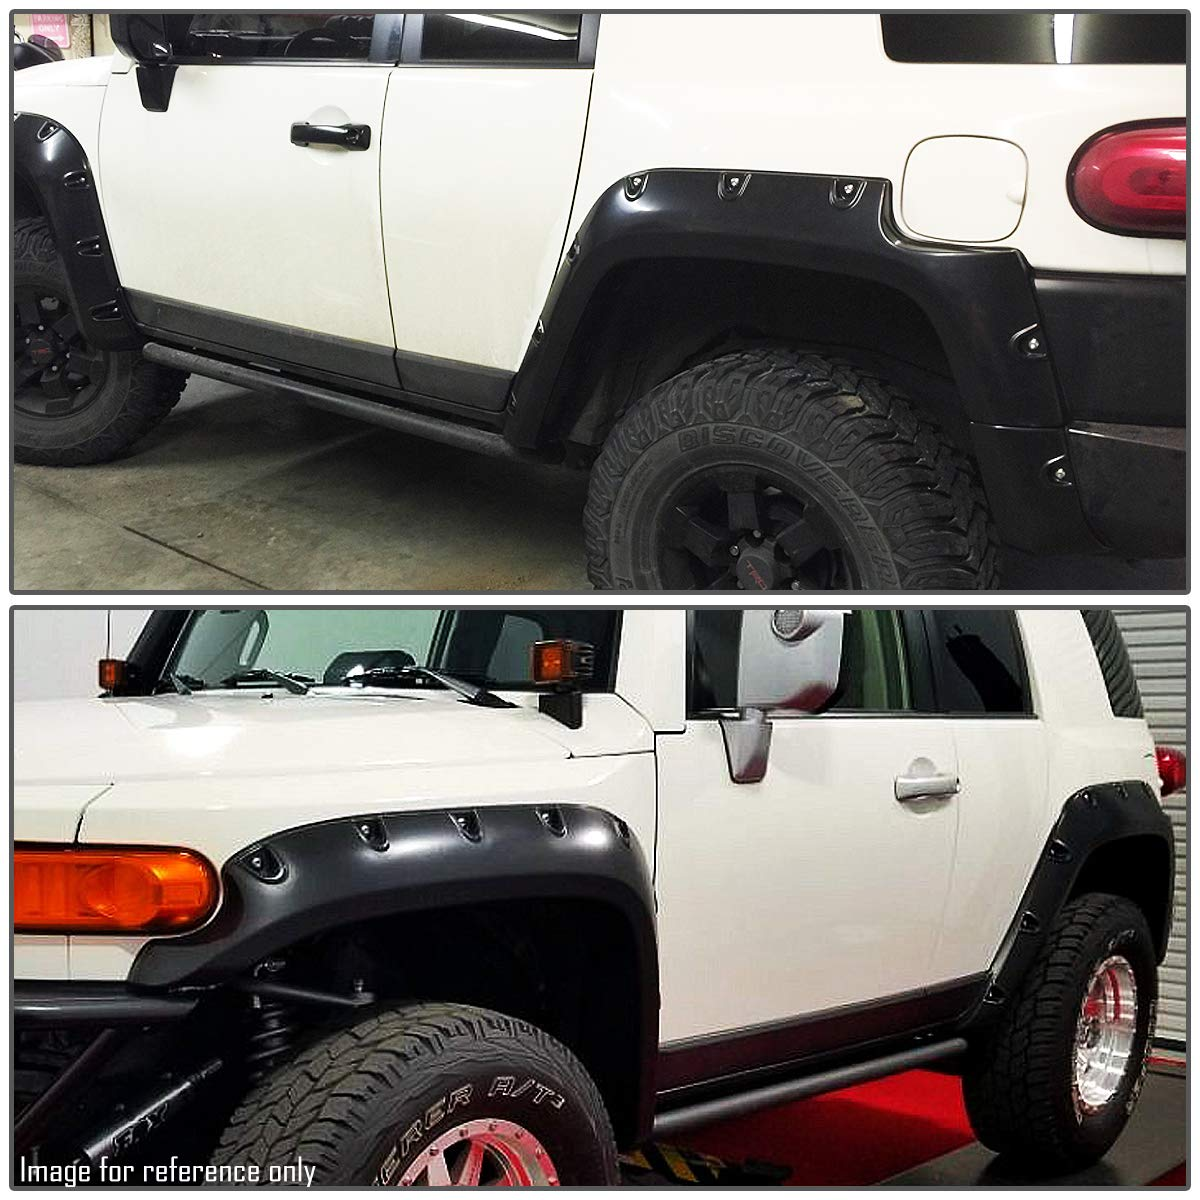 Glossy Bump Texture Wheel Fender Flares For 07-14 FJ Cruiser 4Pcs Pocket Riveted Style